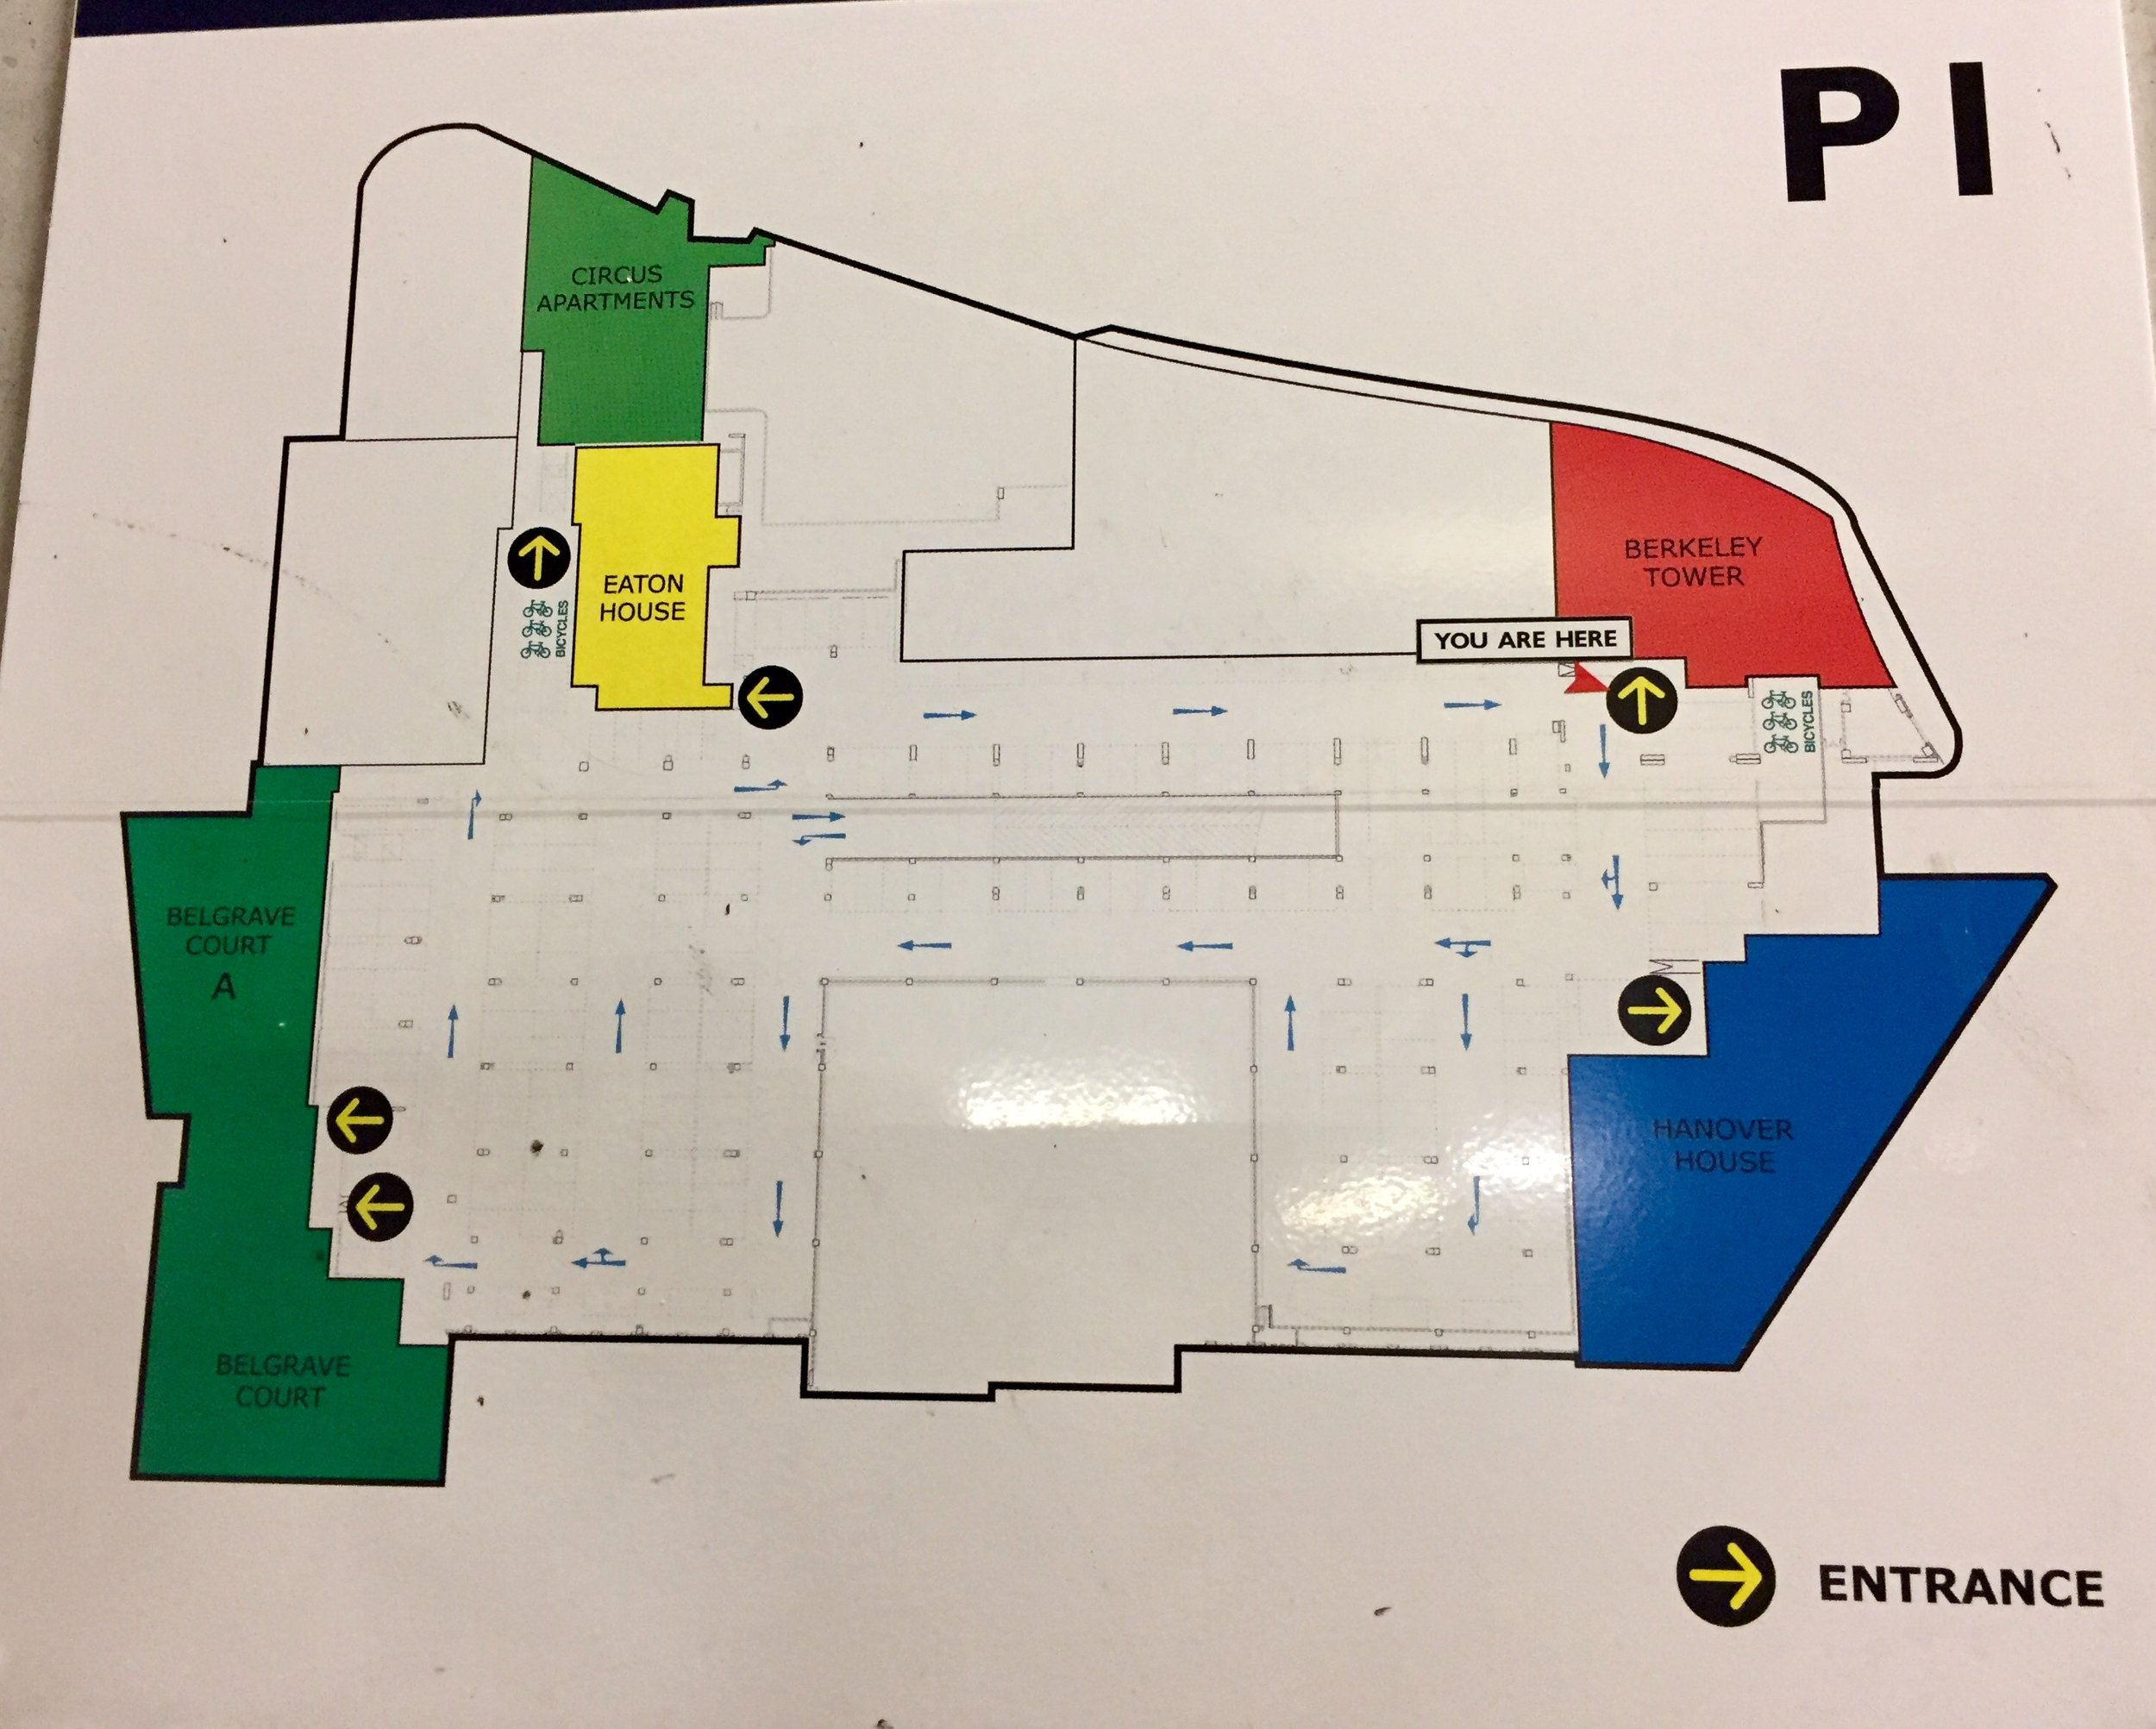 P1 car park layout. the entrance to the loading bay is next to eaton house